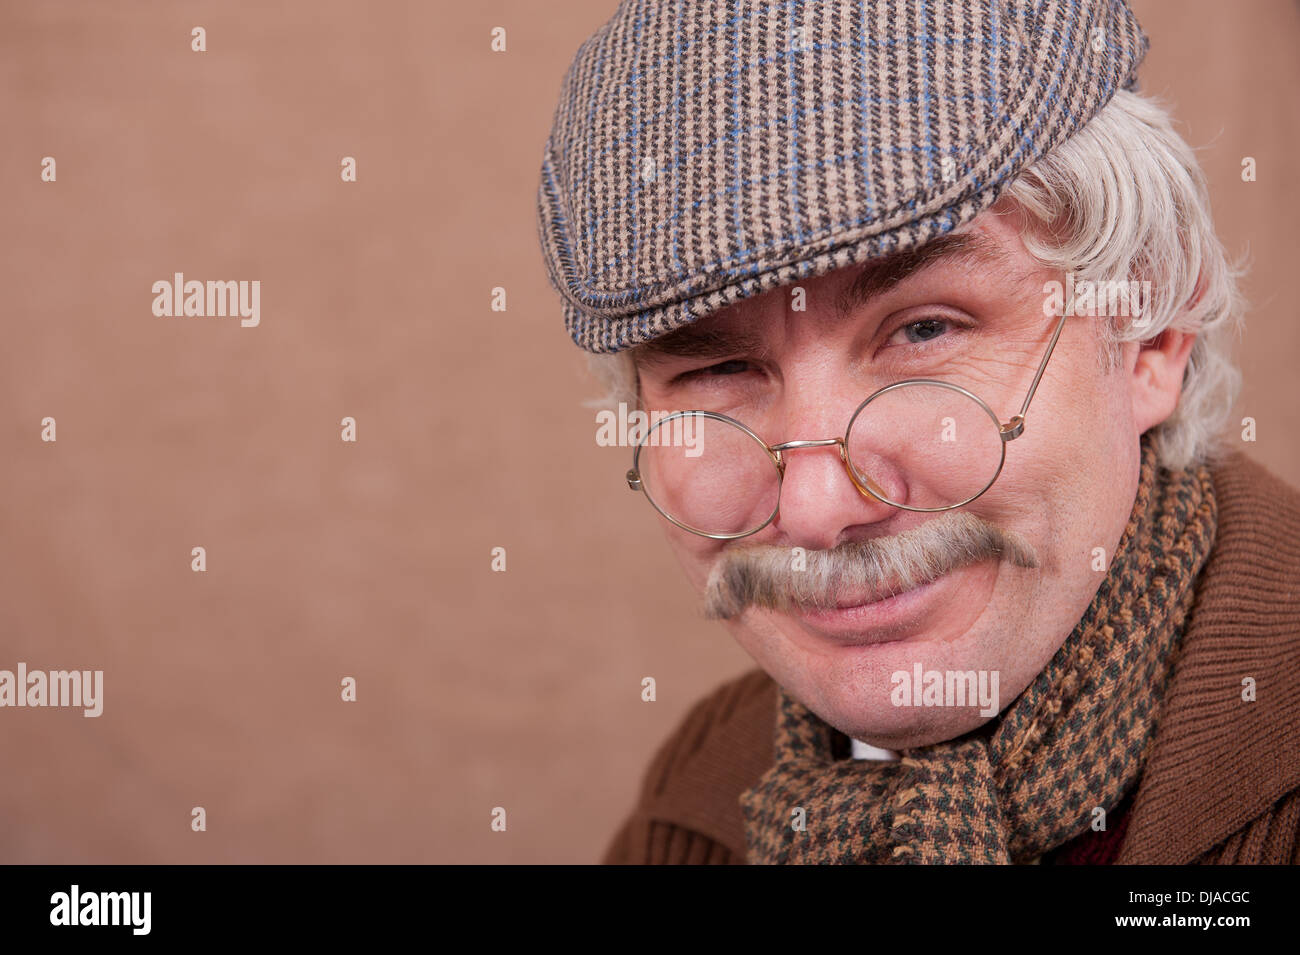 Smiling grey haired old man wearing flat cap,glasses and comfy scarf, against a brown background. - Stock Image